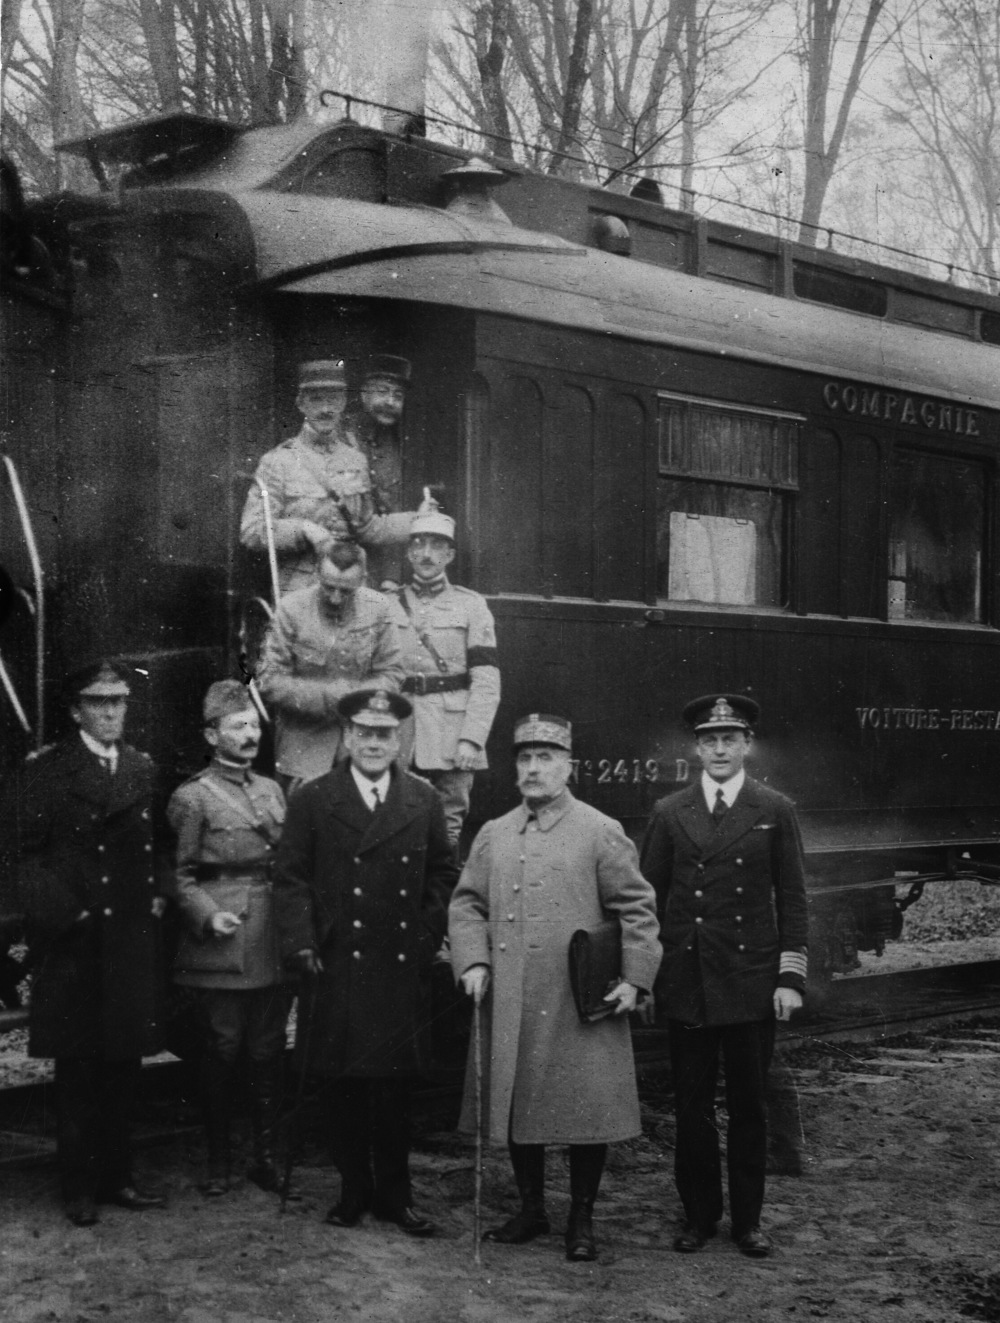 Marshal Foch with members of the Allied delegation outside the railway carriage where the armistice with Germany was signed.